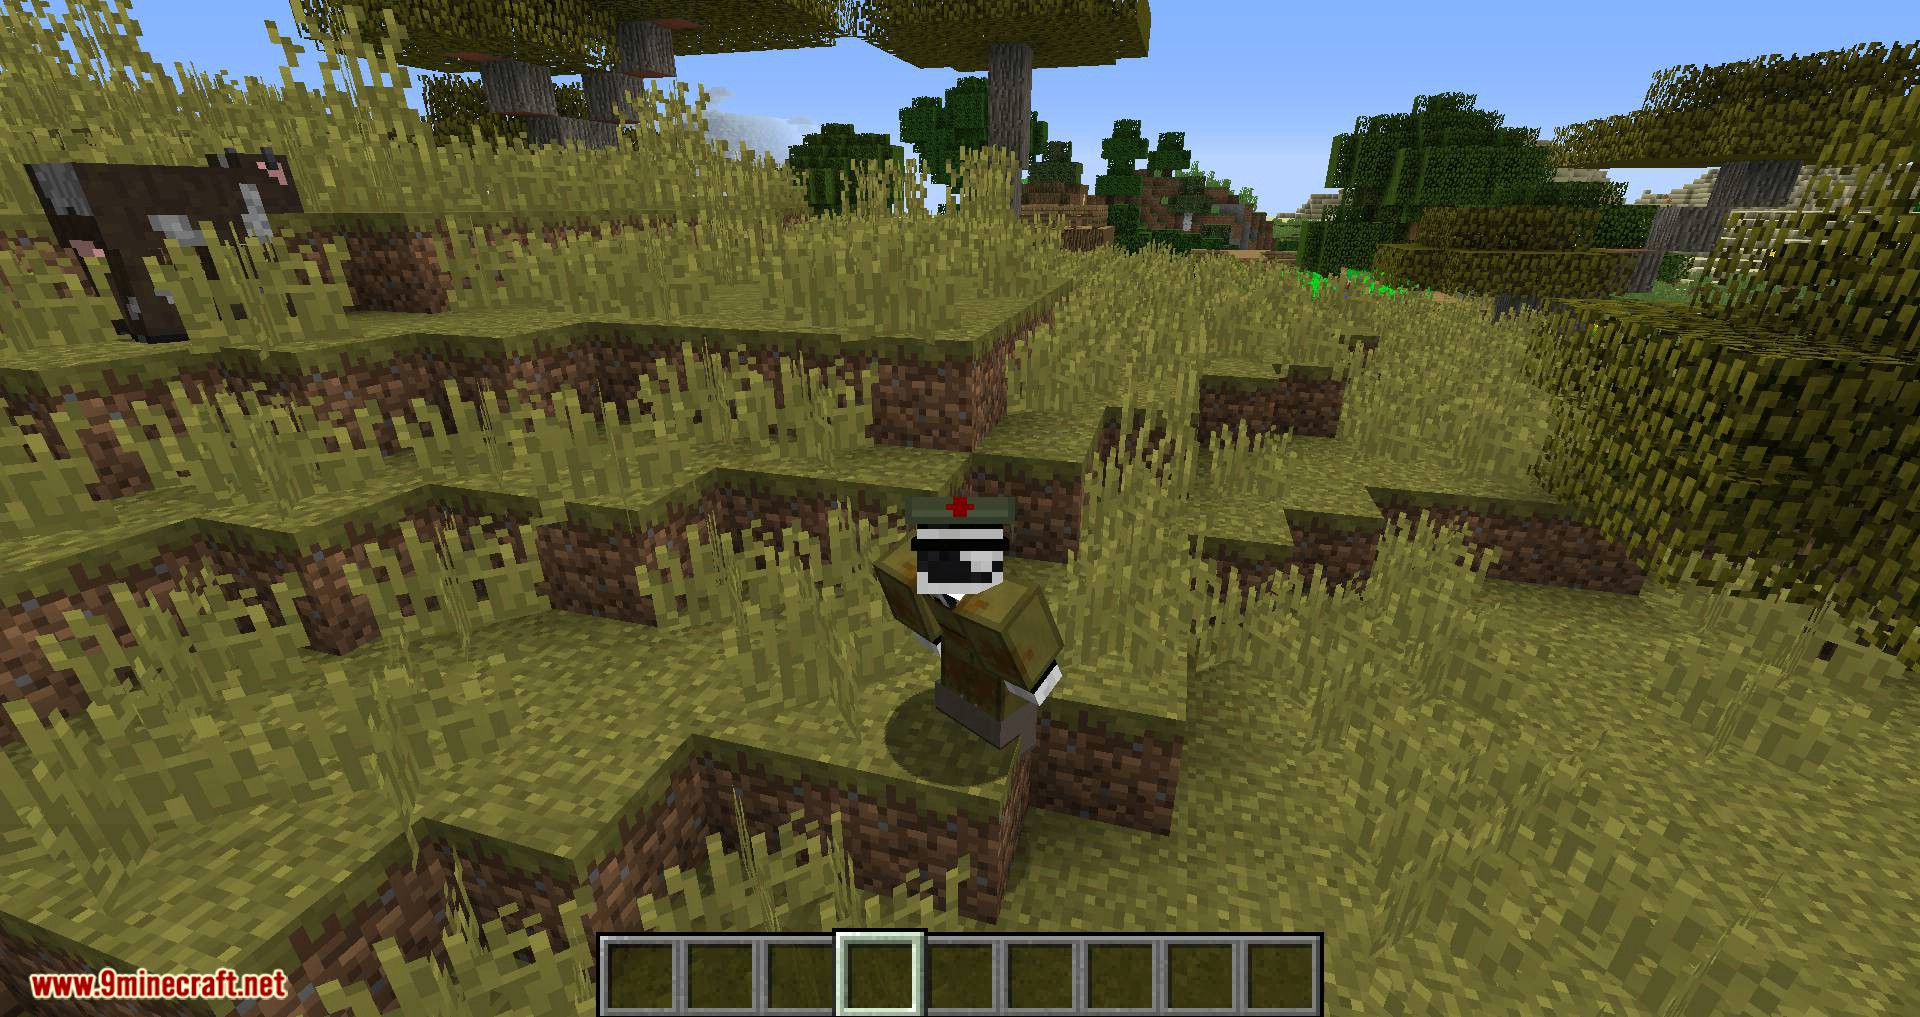 Flan_s Content Pack WW2 Armors mod for minecraft 06